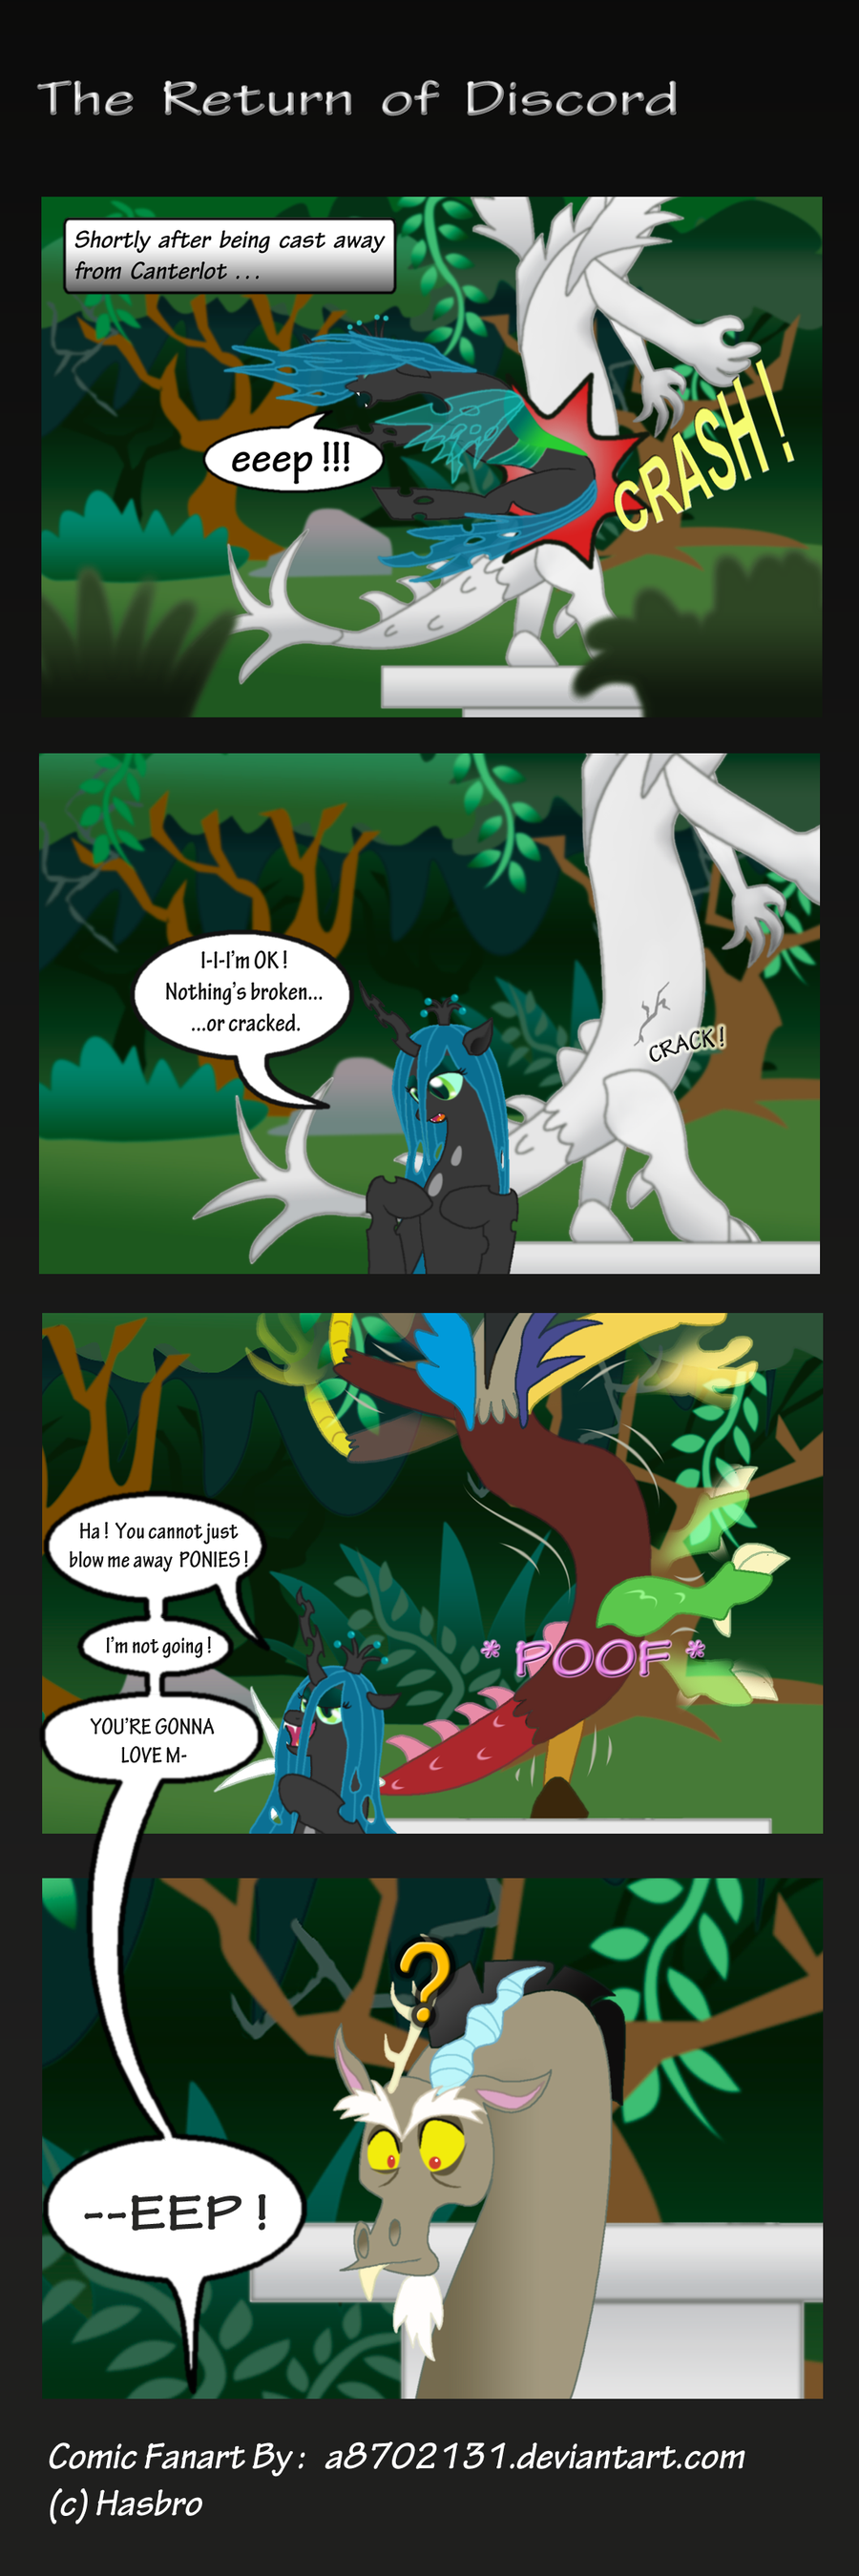 The Return of Discord by a8702131